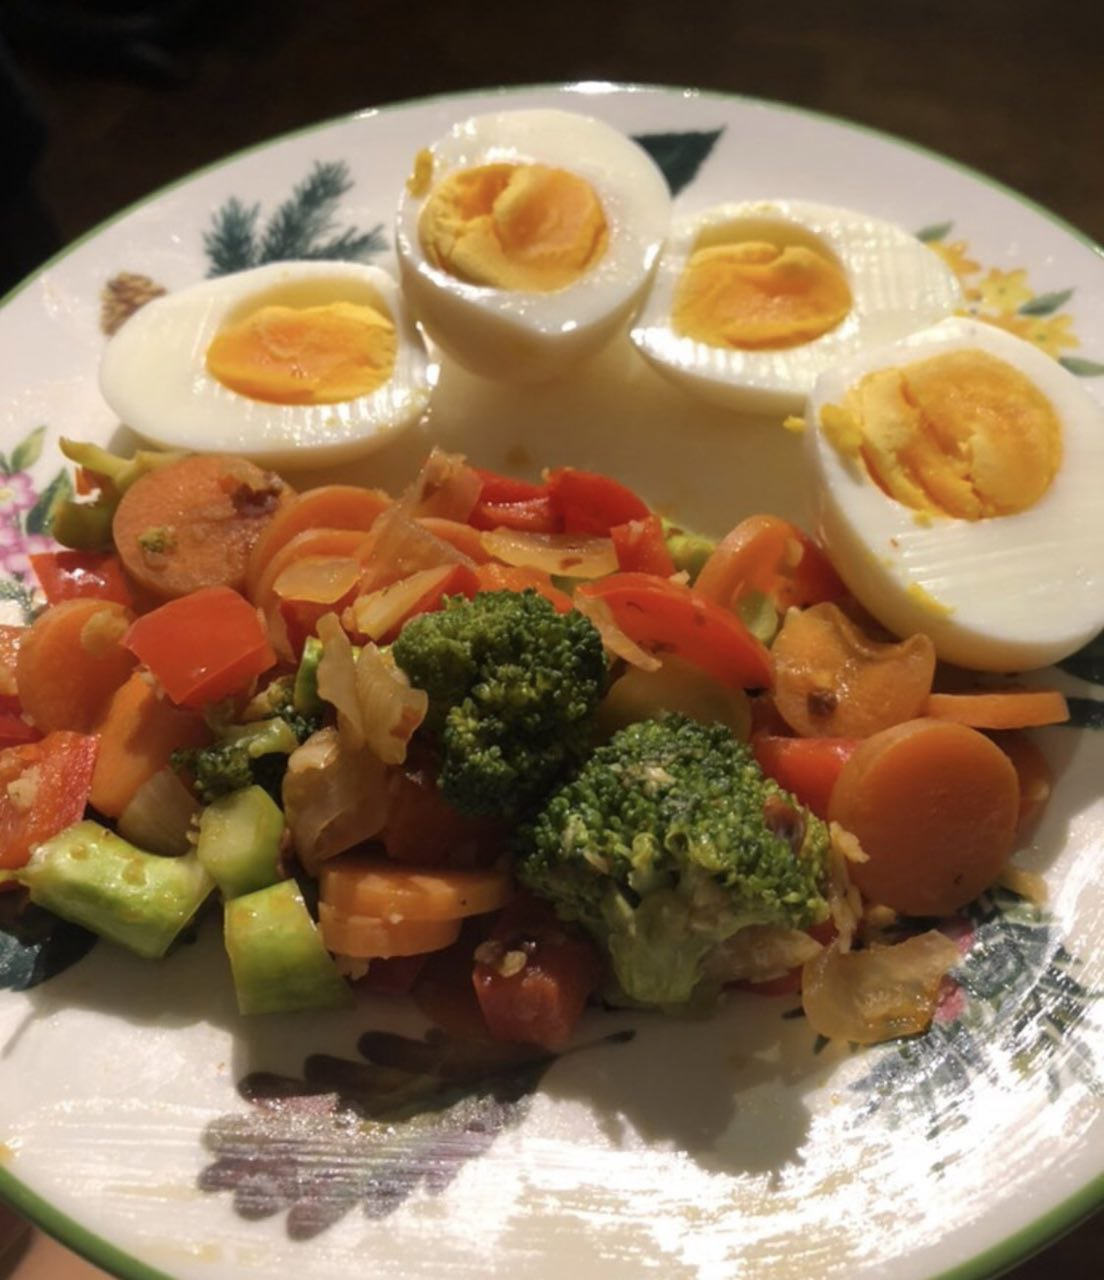 Kirstie's boiled eggs and vegetable stir-fry